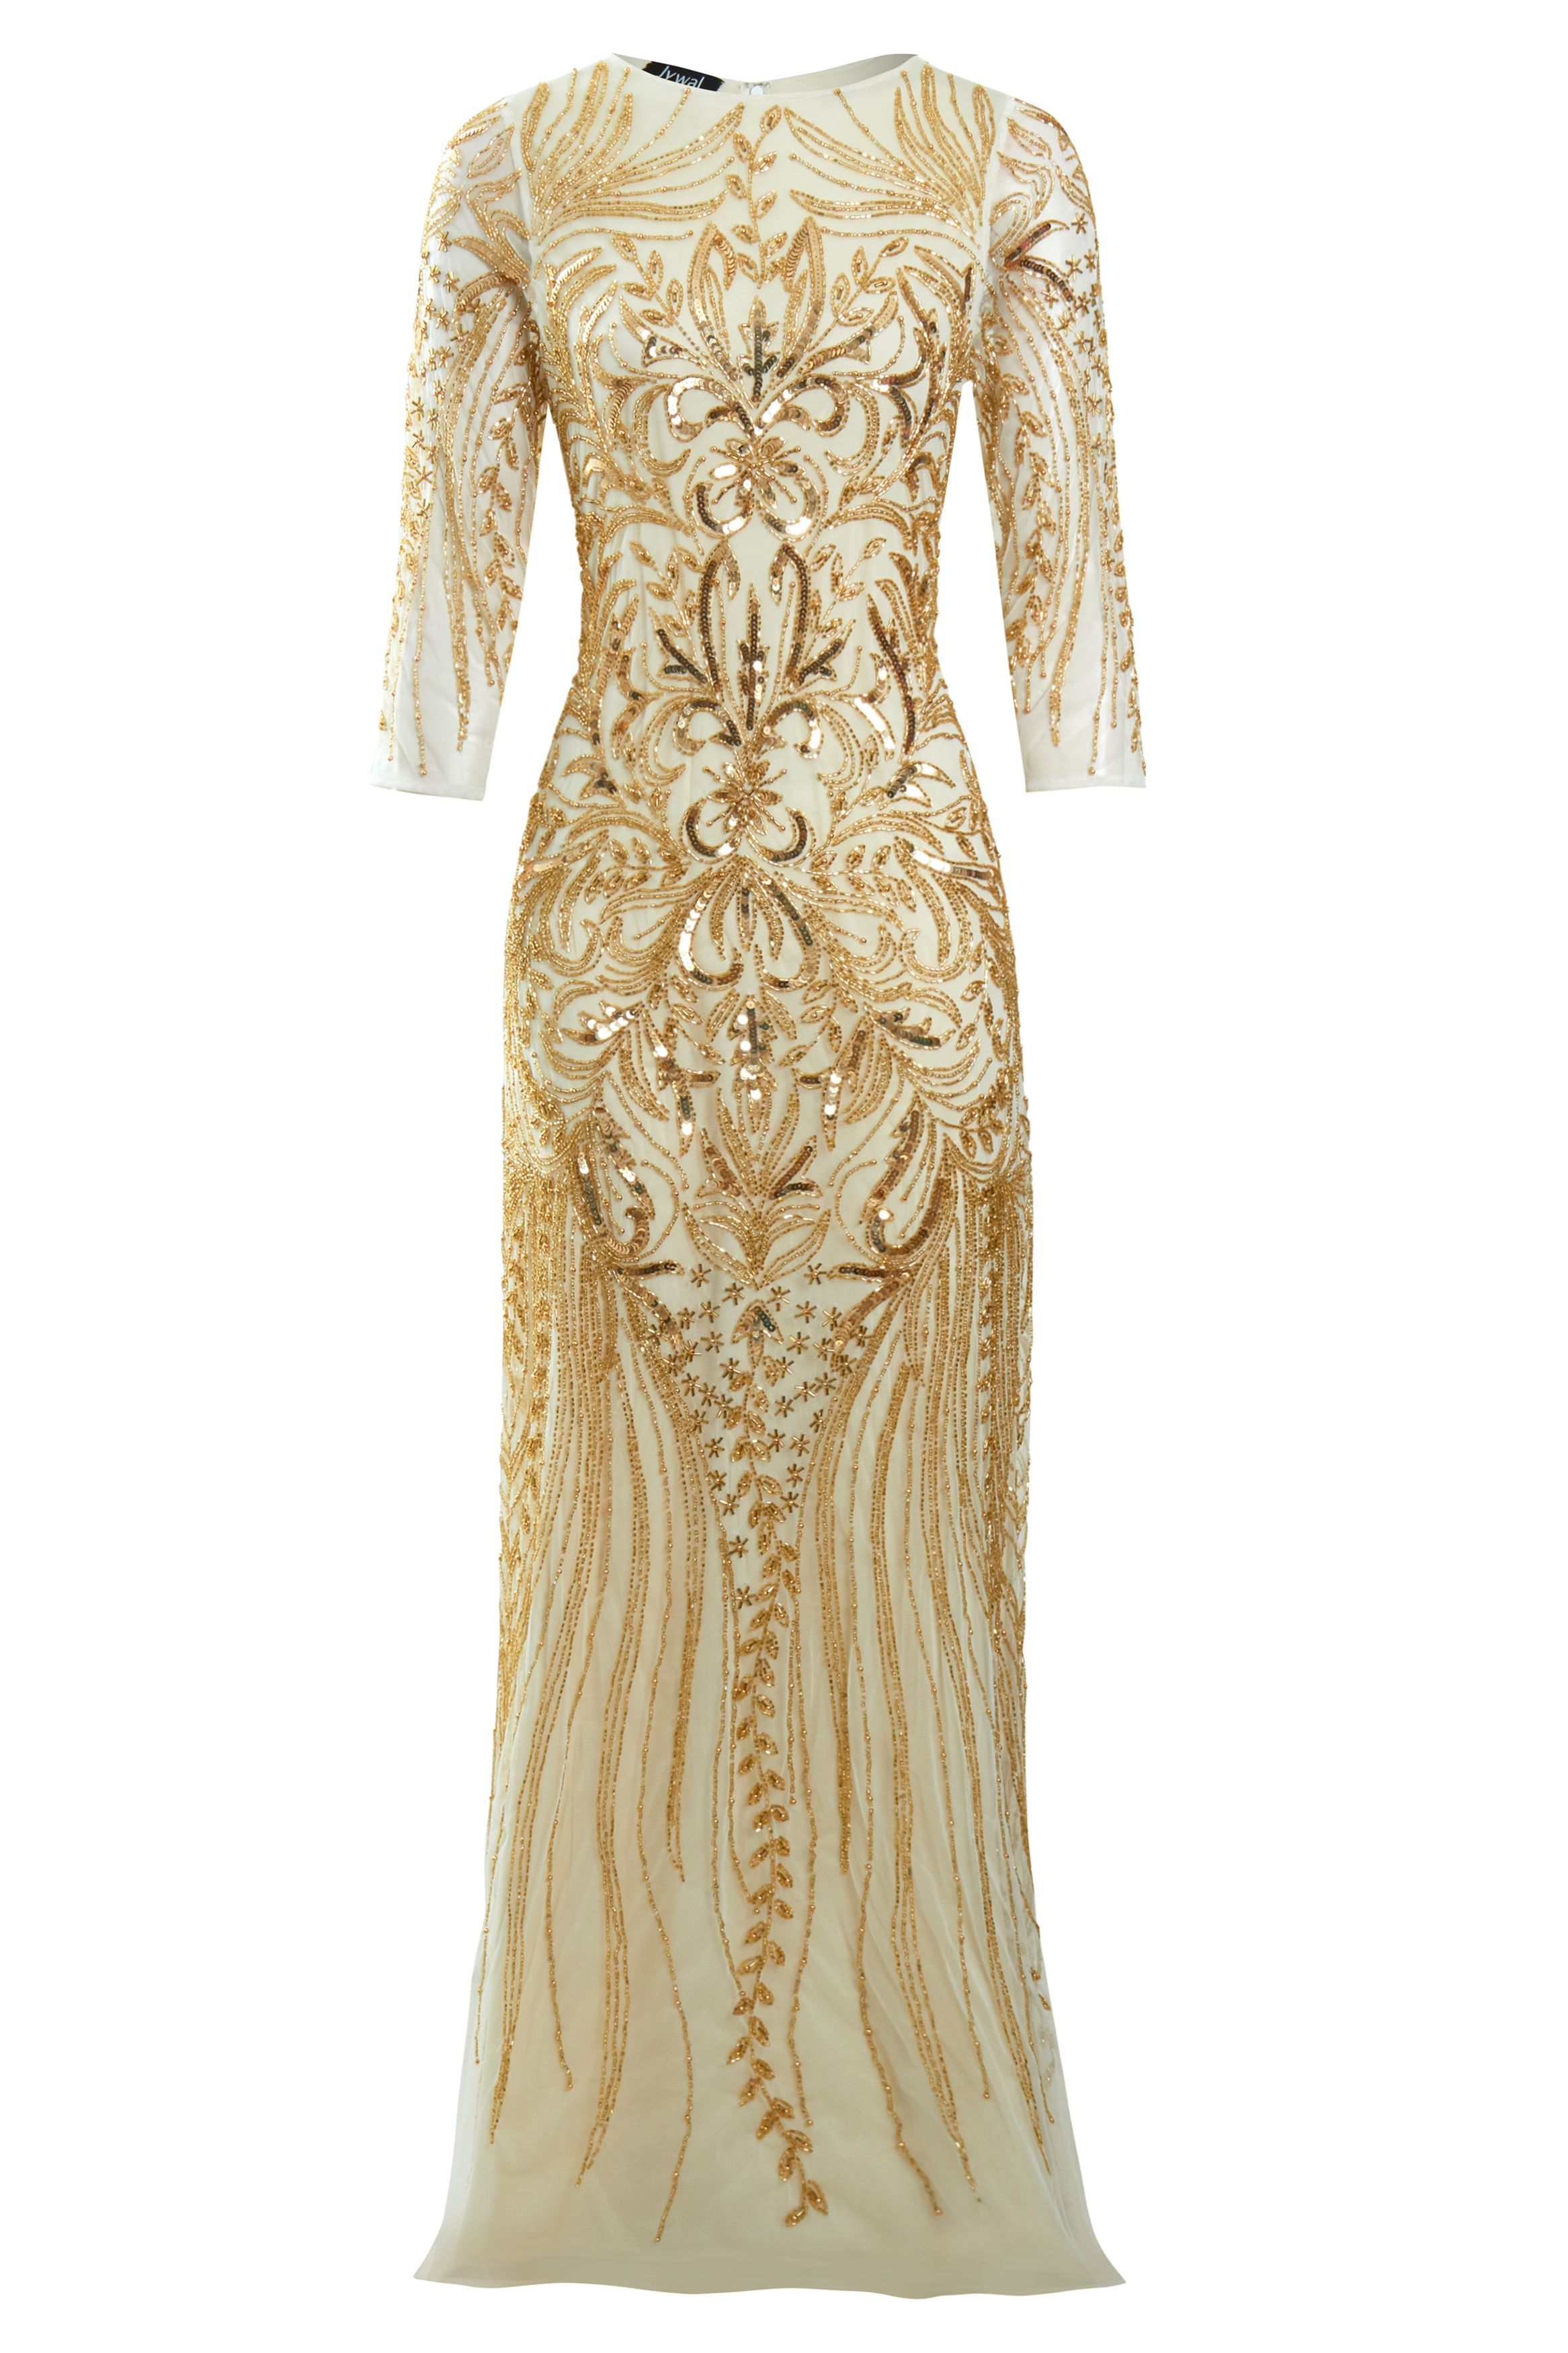 724c982660fe Tessy Embellished 1920s Great Gatsby Inspired